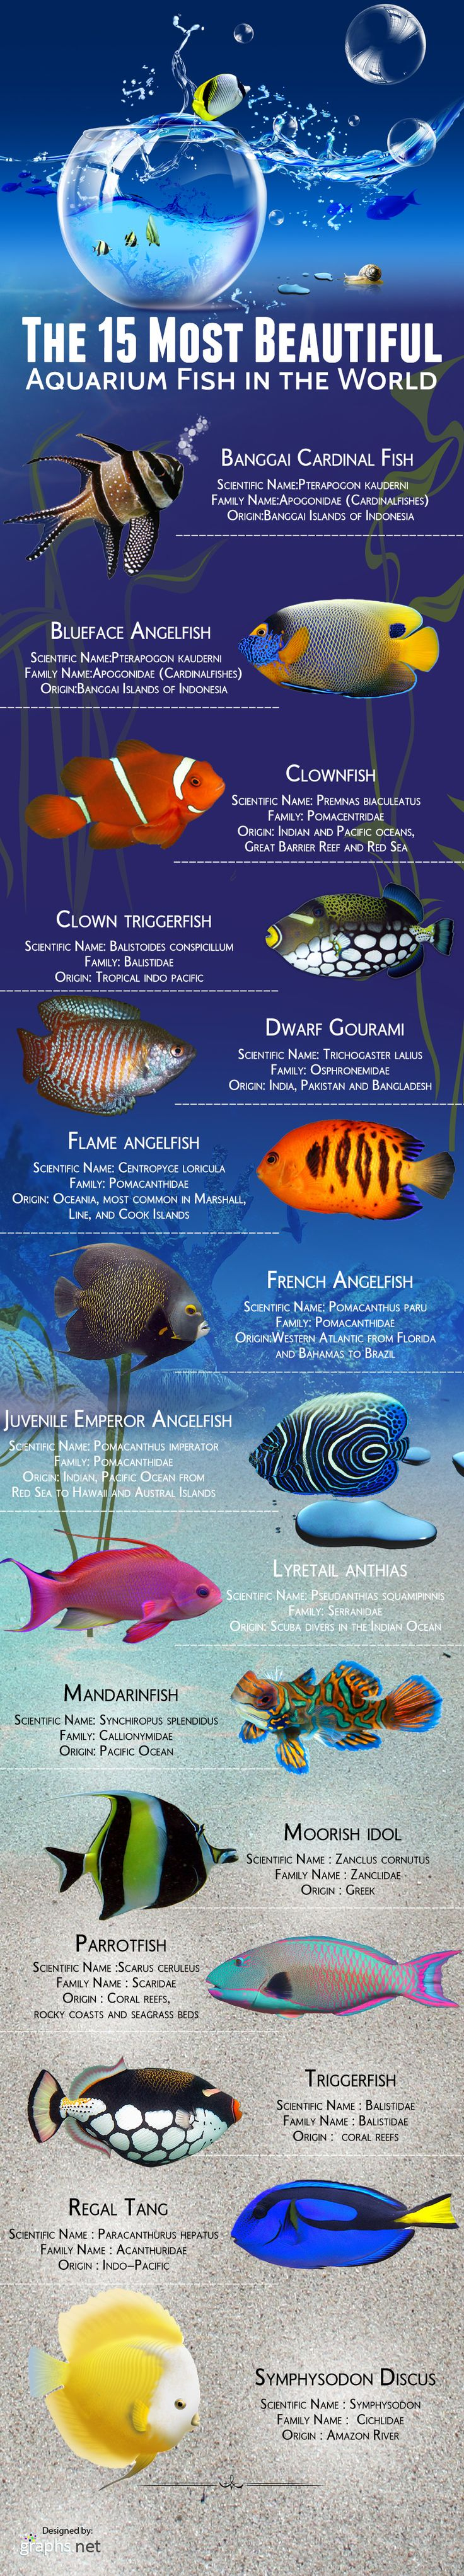 Fish are beautiful creatures that have the most amazing colors and markings here this are 15 most beautiful aquarium fishes in the world.